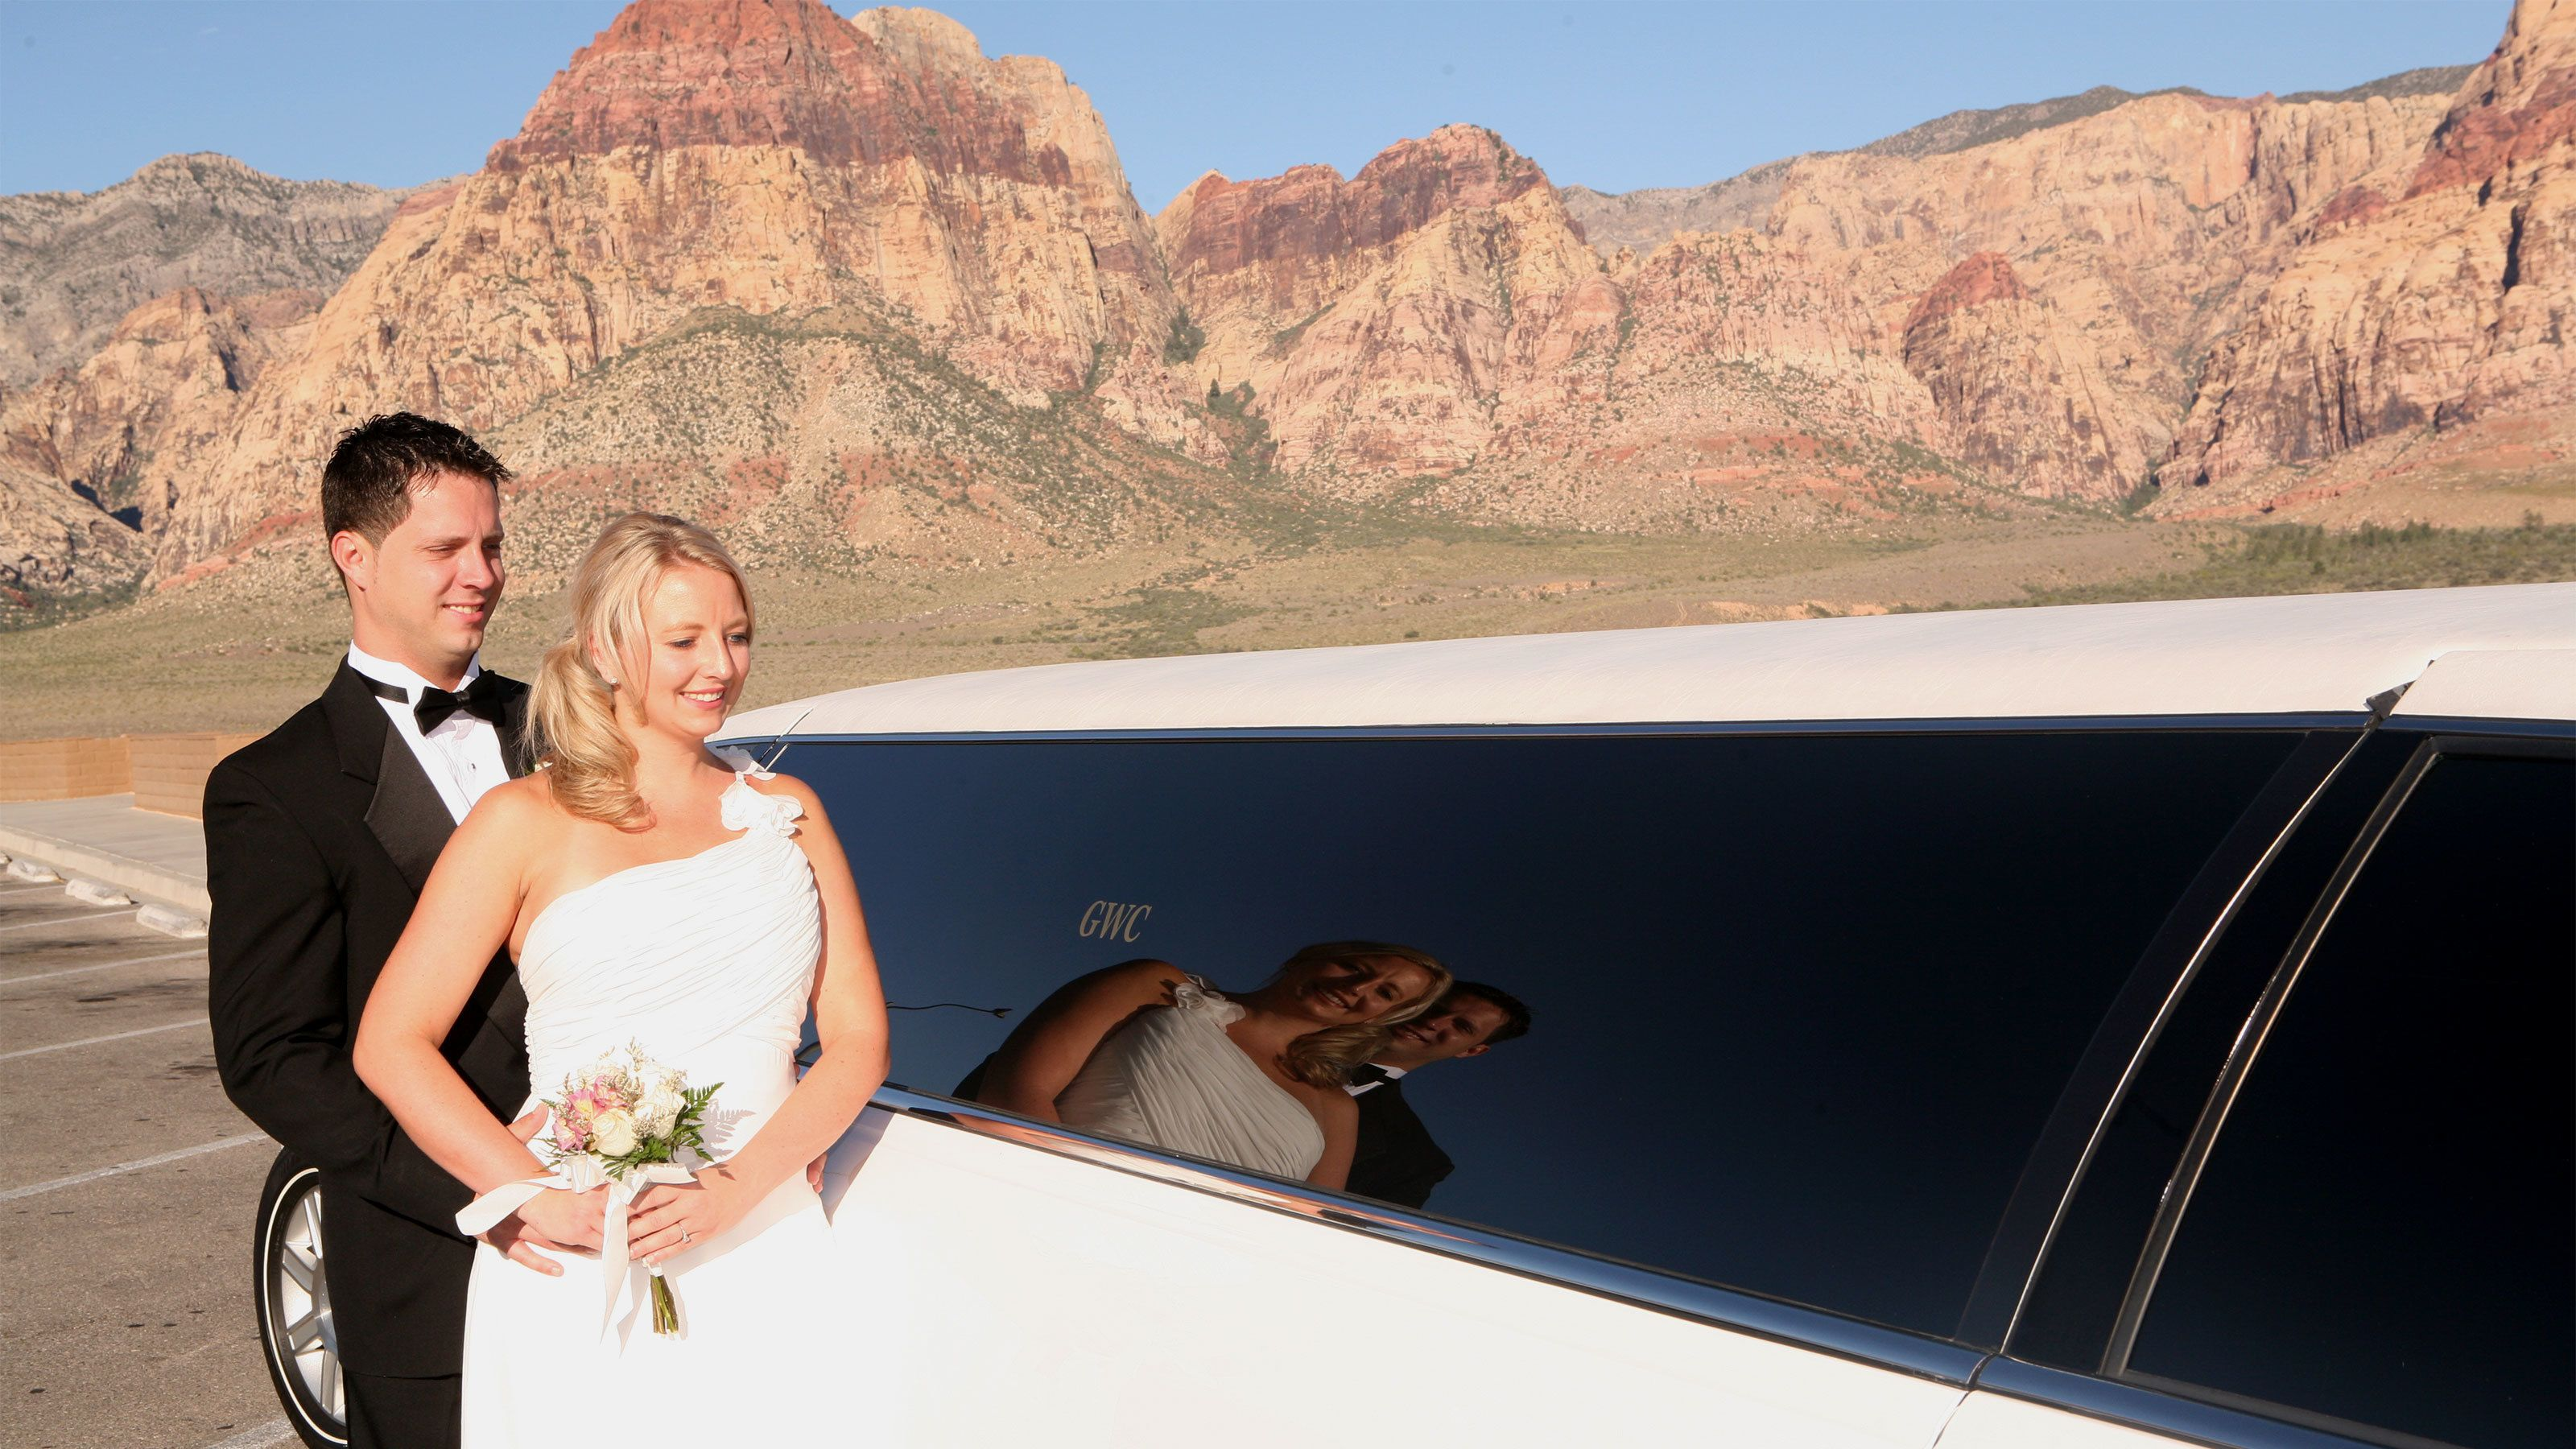 Happy bride and groom enter their limousine ready to depart from Red Rock Canyon